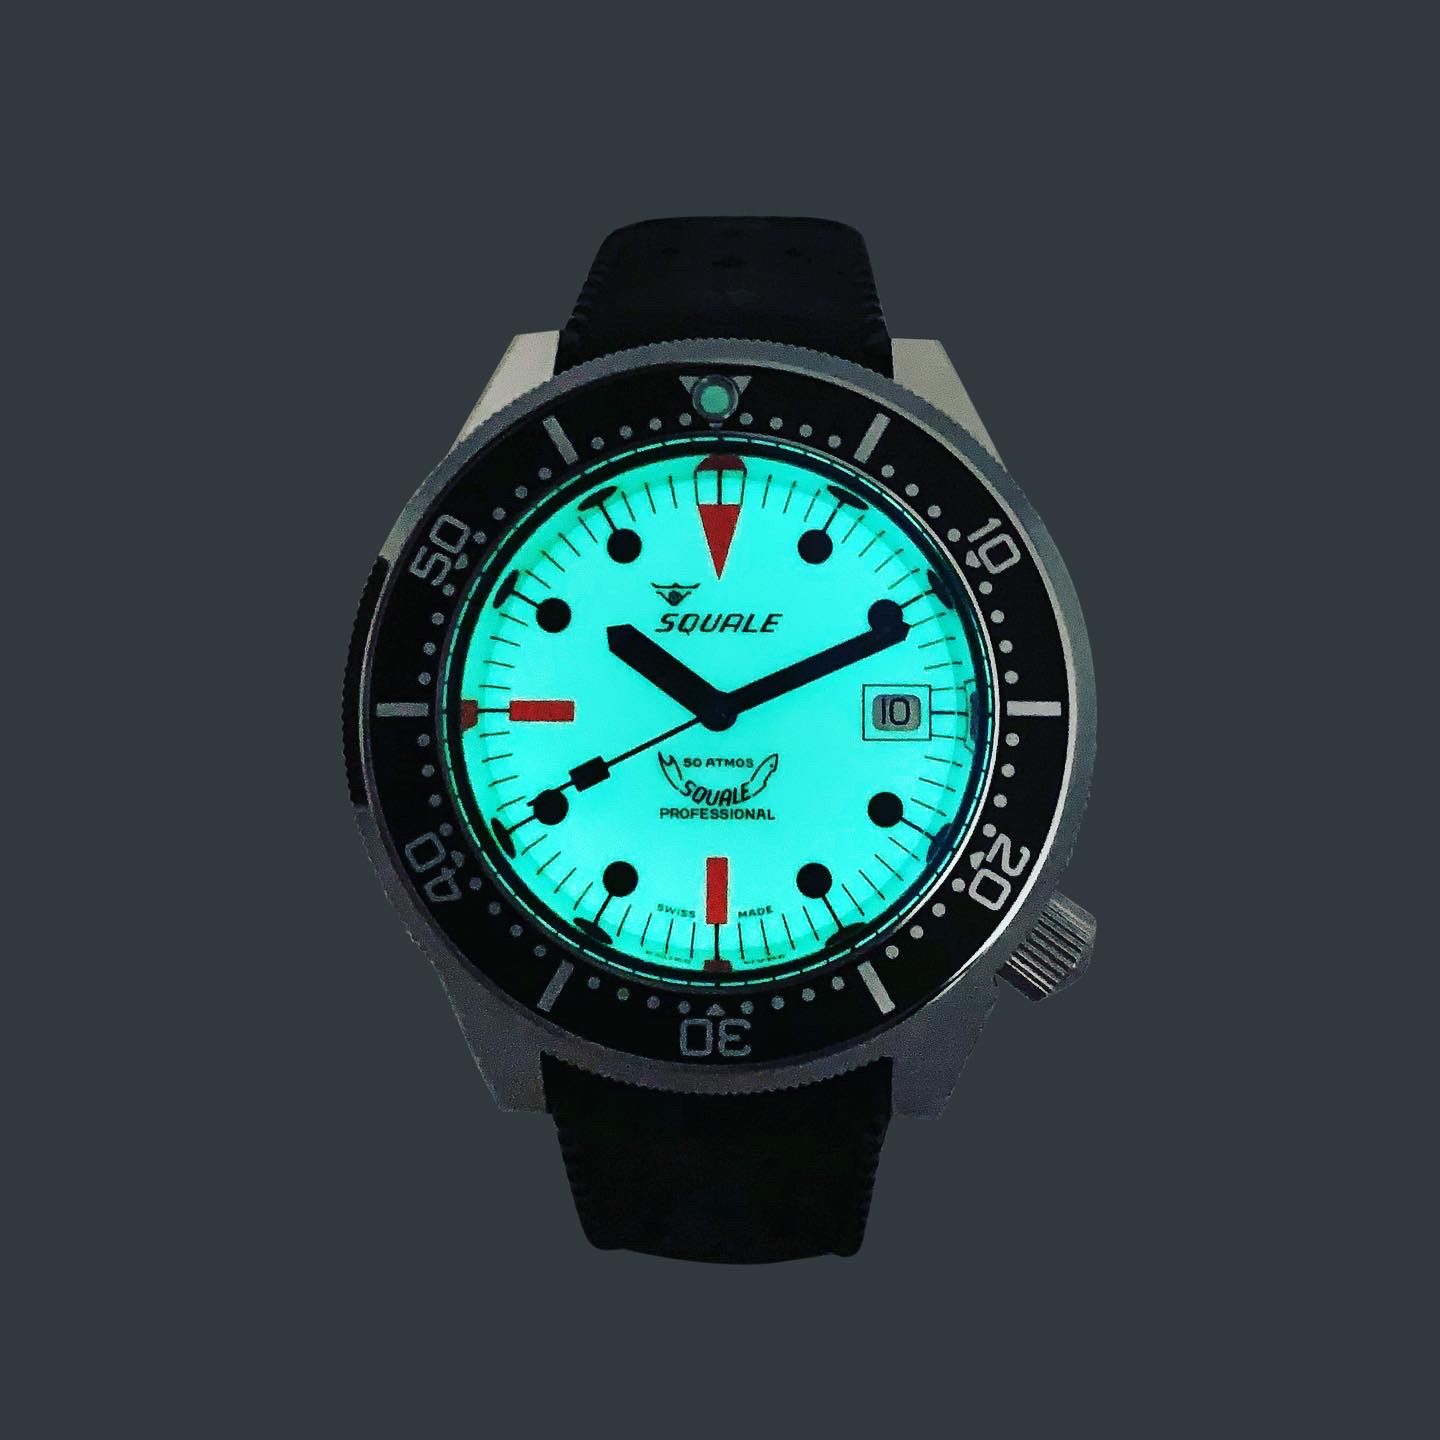 Squale 50 atmos 1521 Full Lume Dive Watch